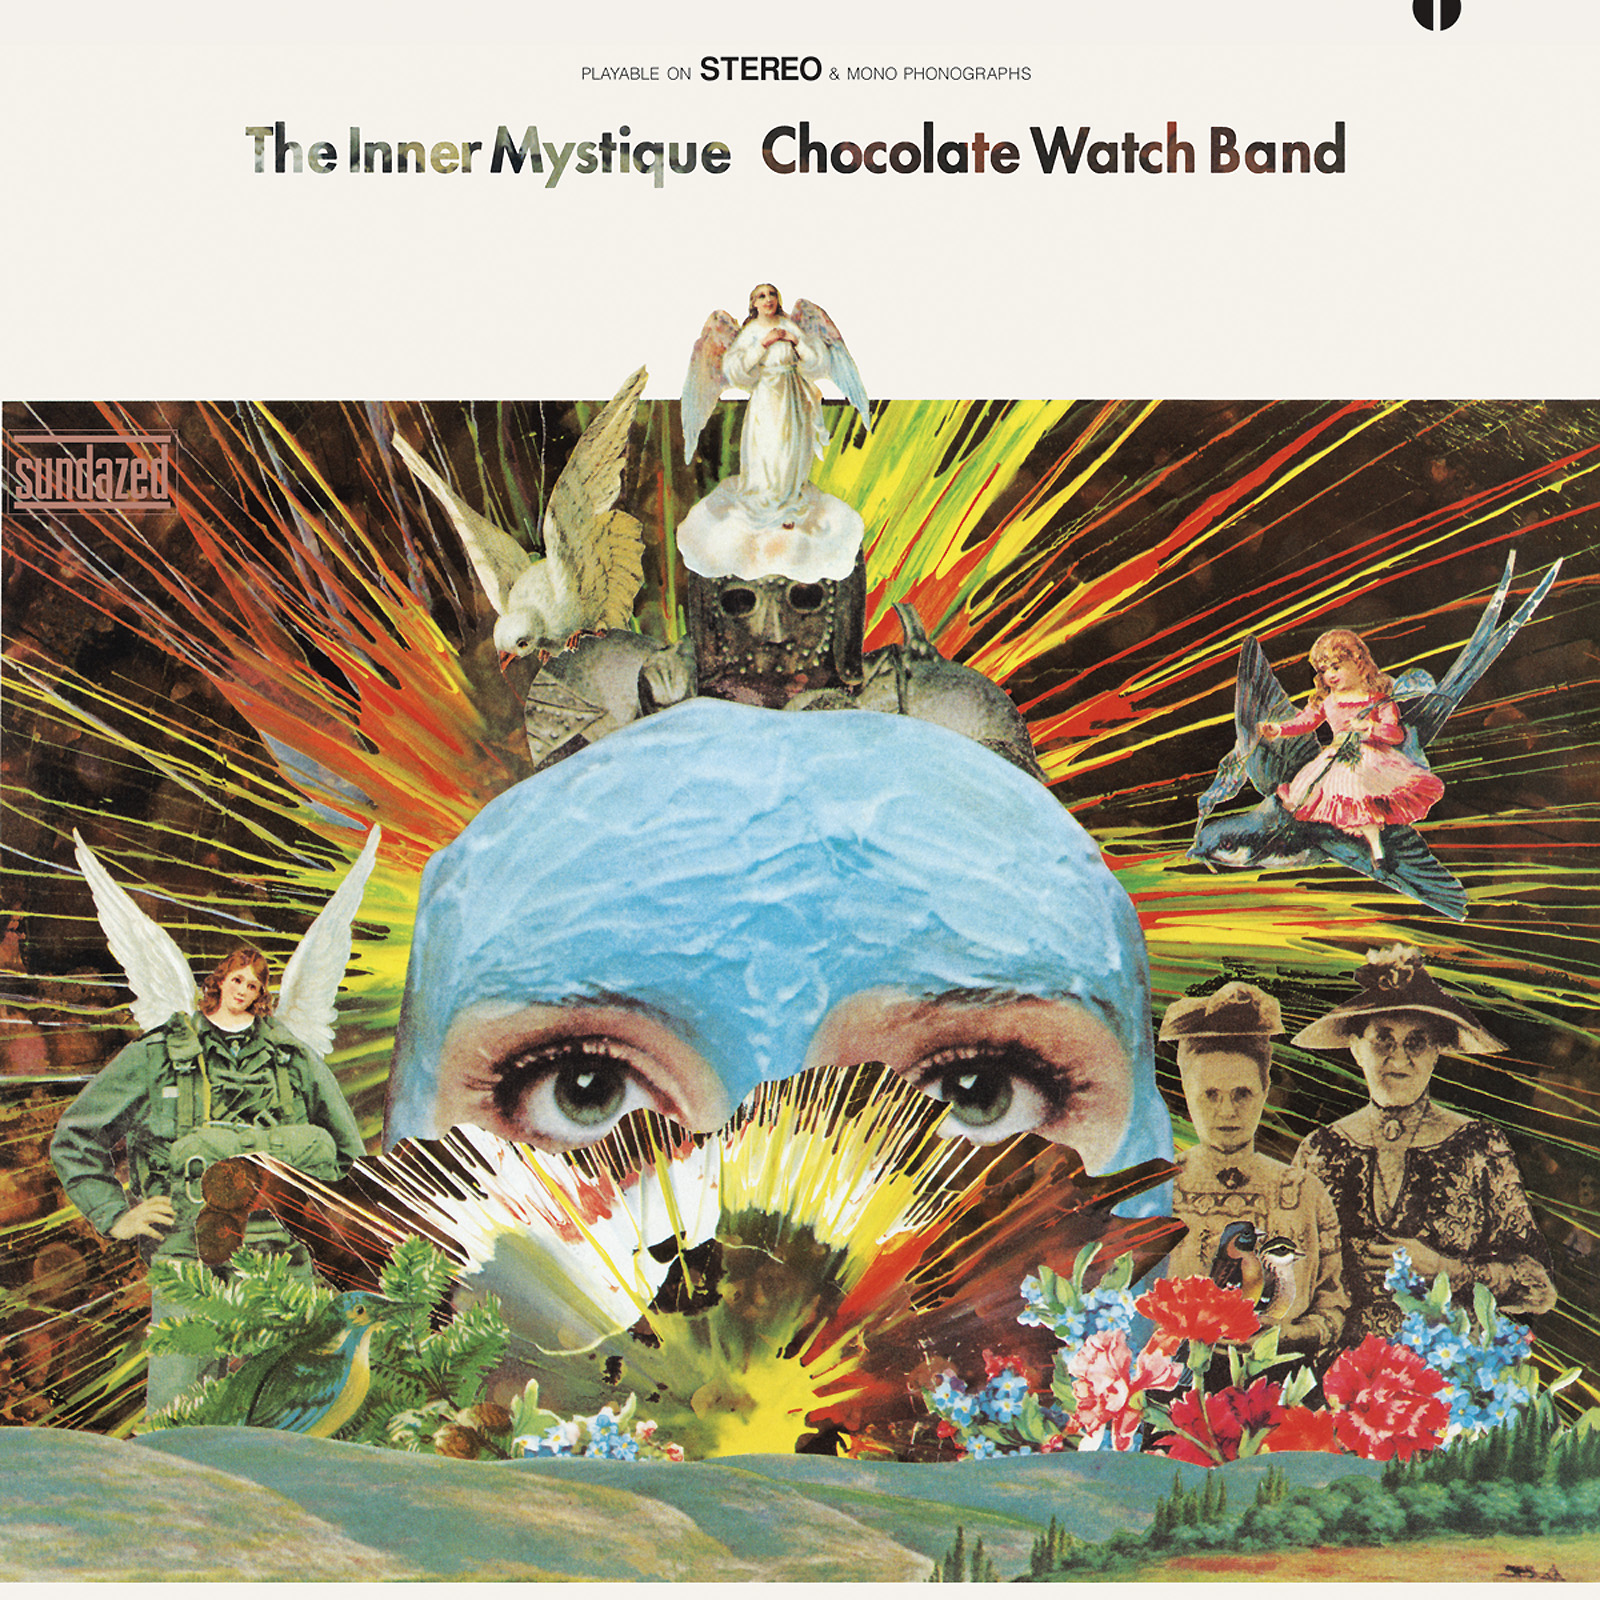 Chocolate Watch Band - The Inner Mystique LIMITED EDITION CD